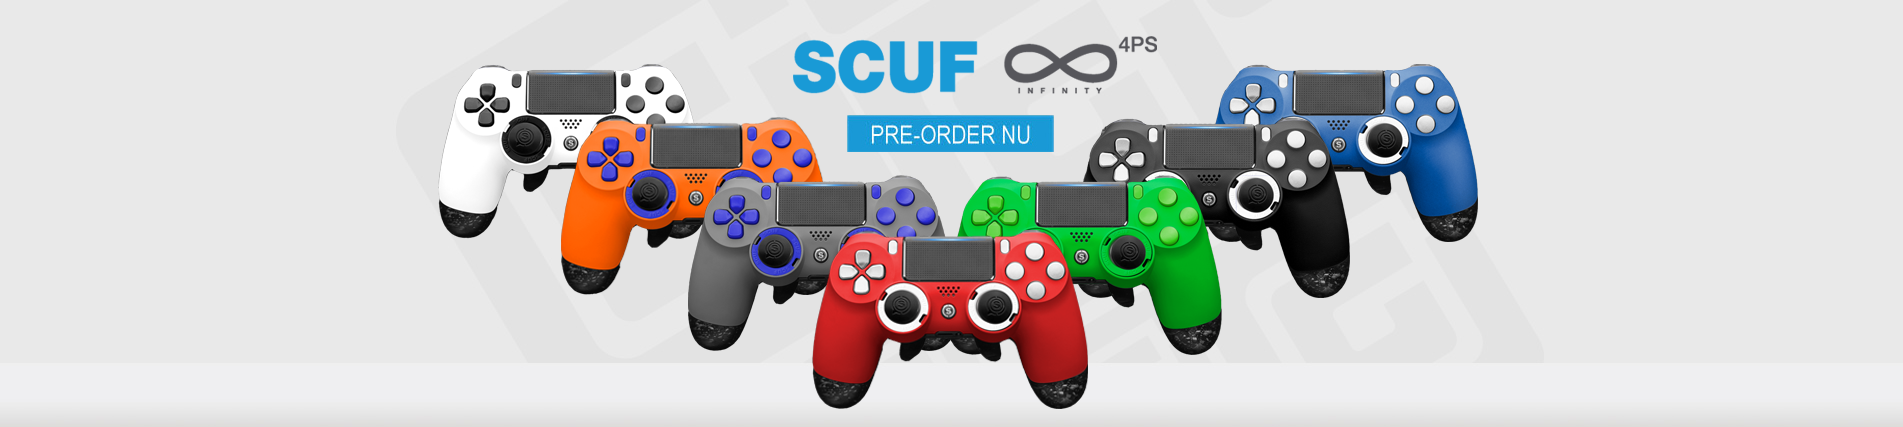 Slider: Scuf full kit